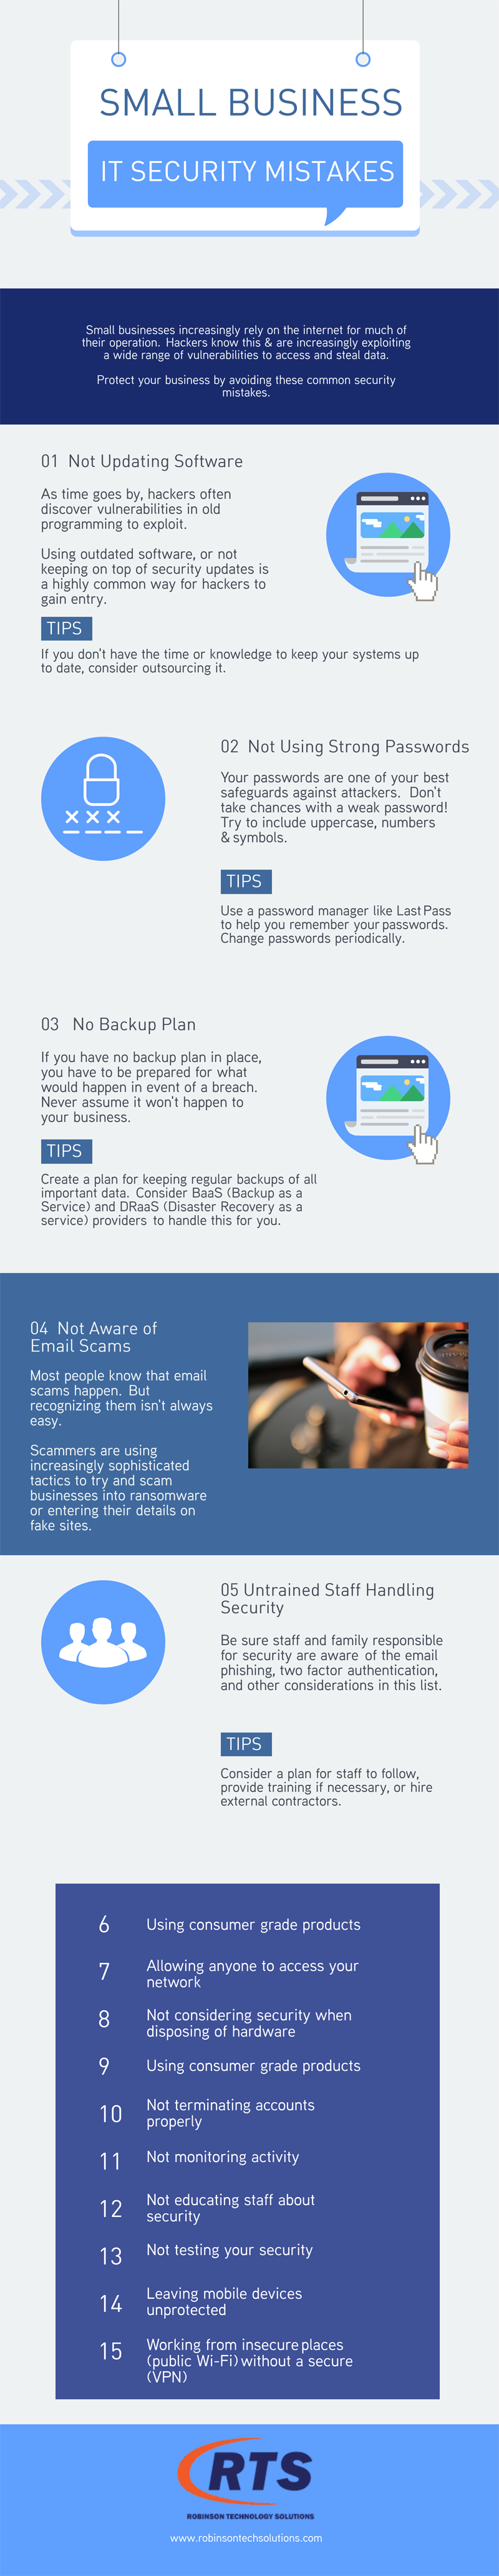 Most-Common-Small-Business-IT-Security-Mistakes-infographic-lkrllc